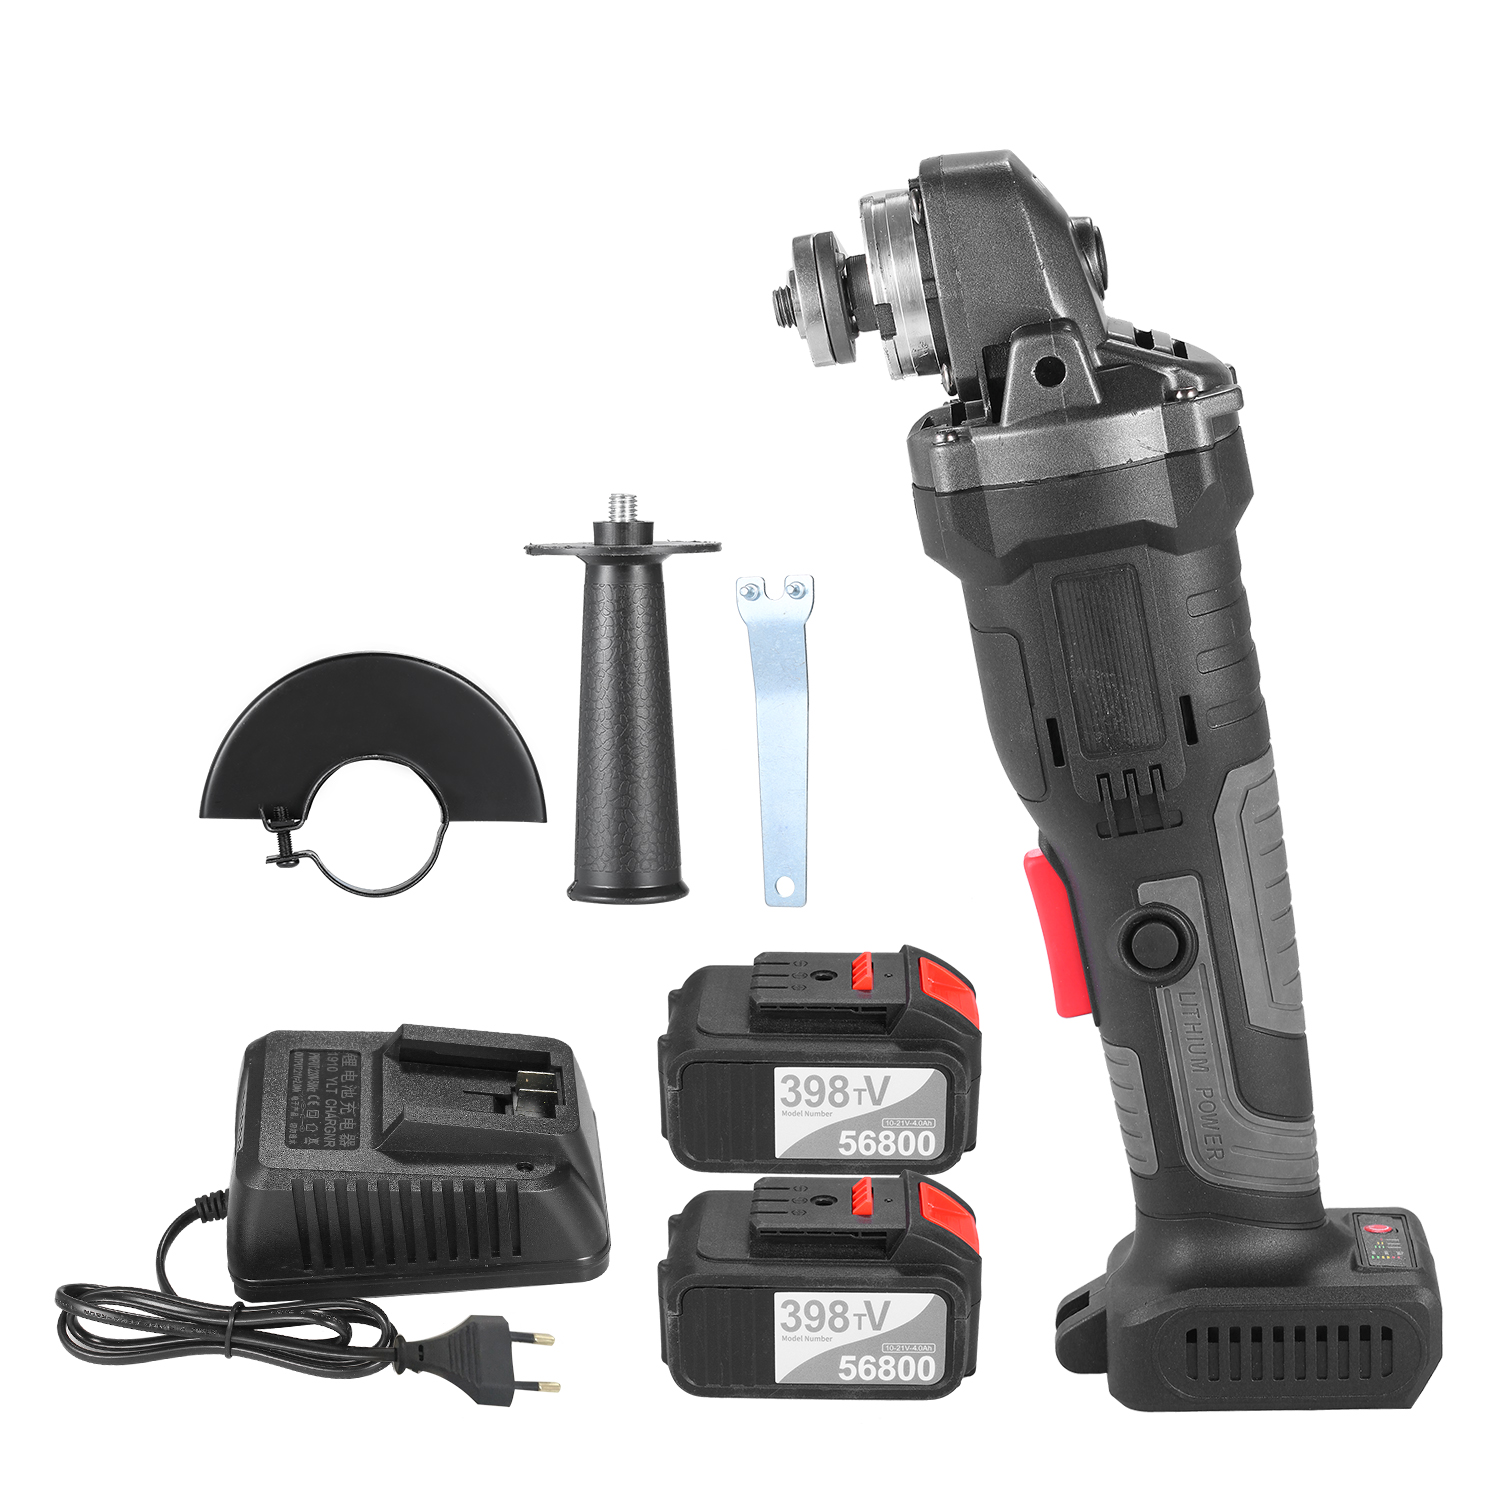 Portable Variable Speed 21V Electric Brushless Angle Grinder Tool Cordless Grinding Machine Metal Cutter With Side Handle